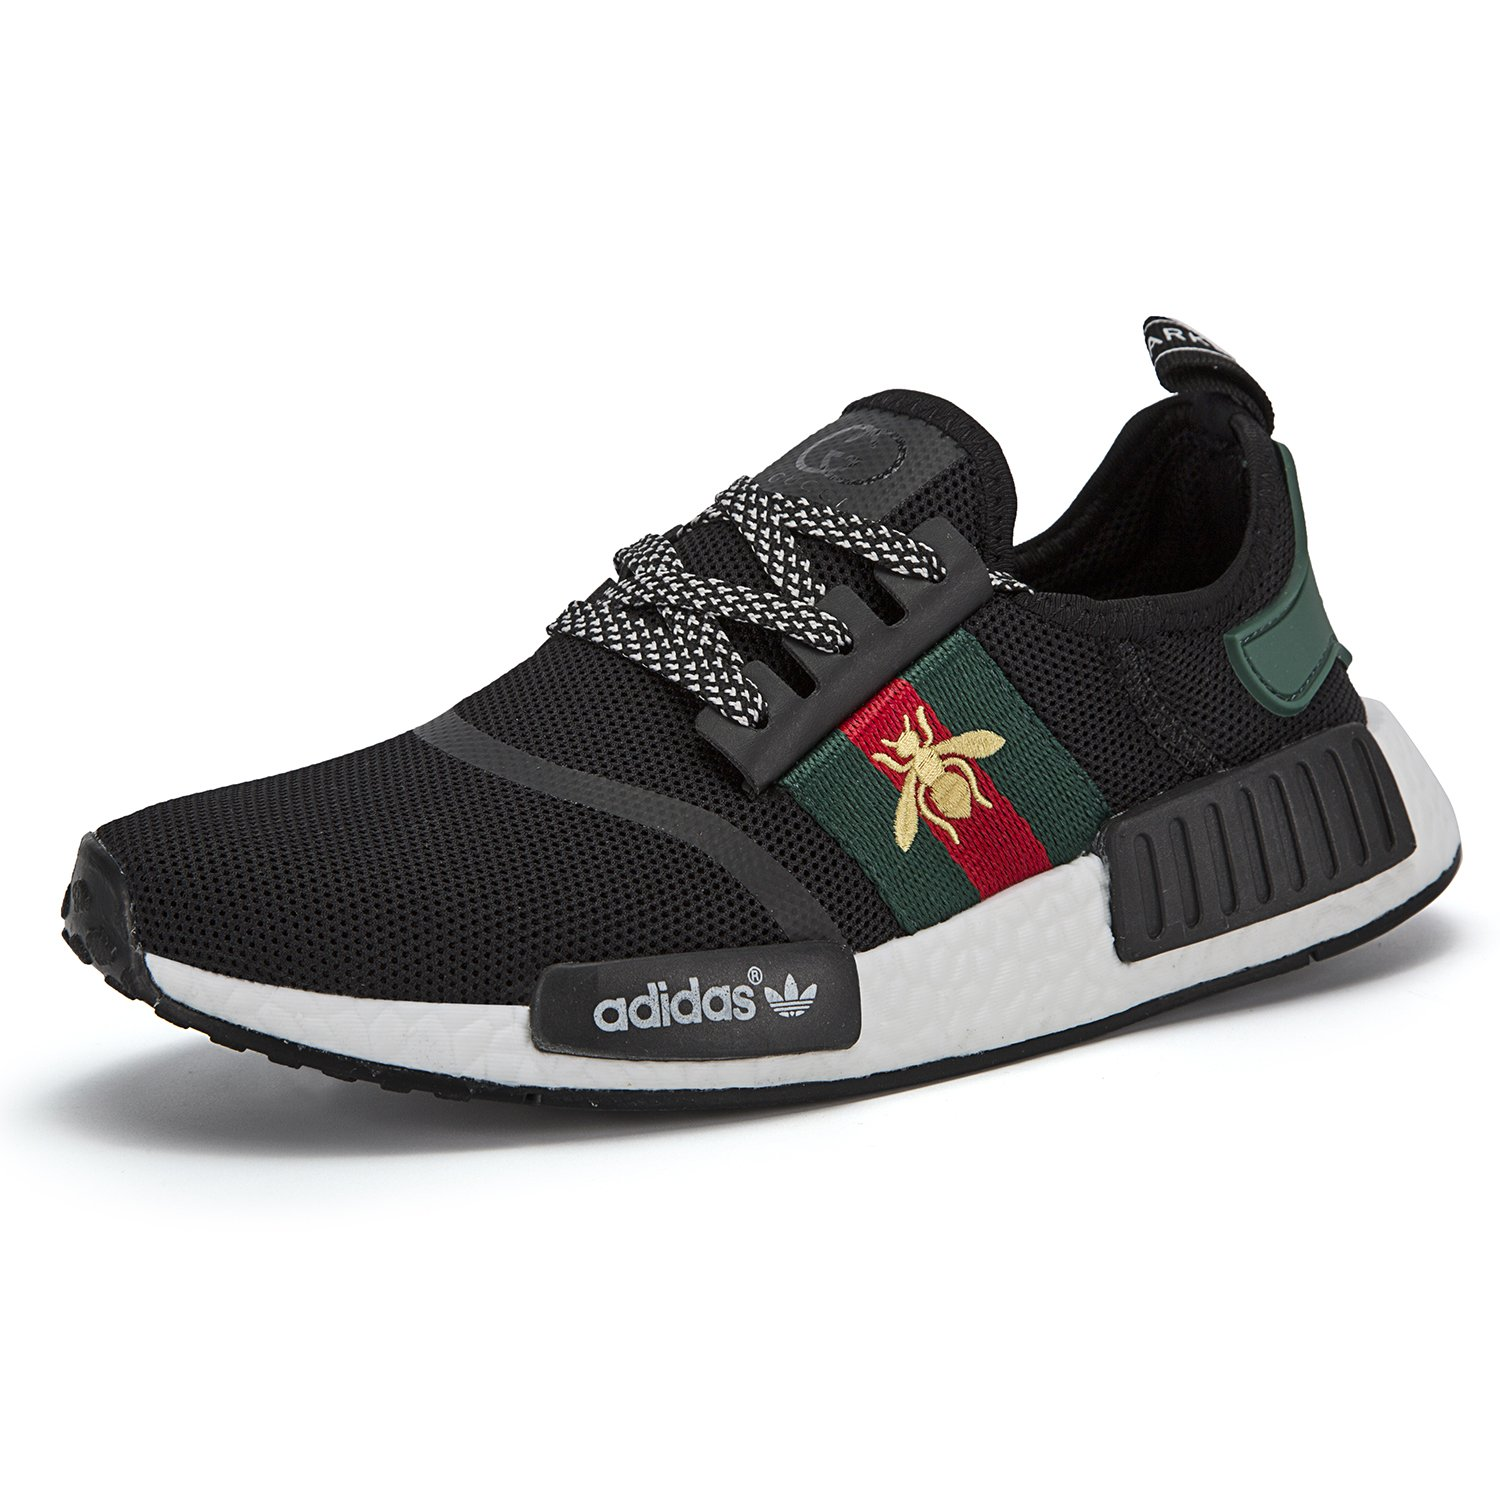 Adidas NMD_R1 x Gucci mens (USA 10) (UK 9.5) (EU 44) (28 cm): Amazon.it: Scarpe e borse